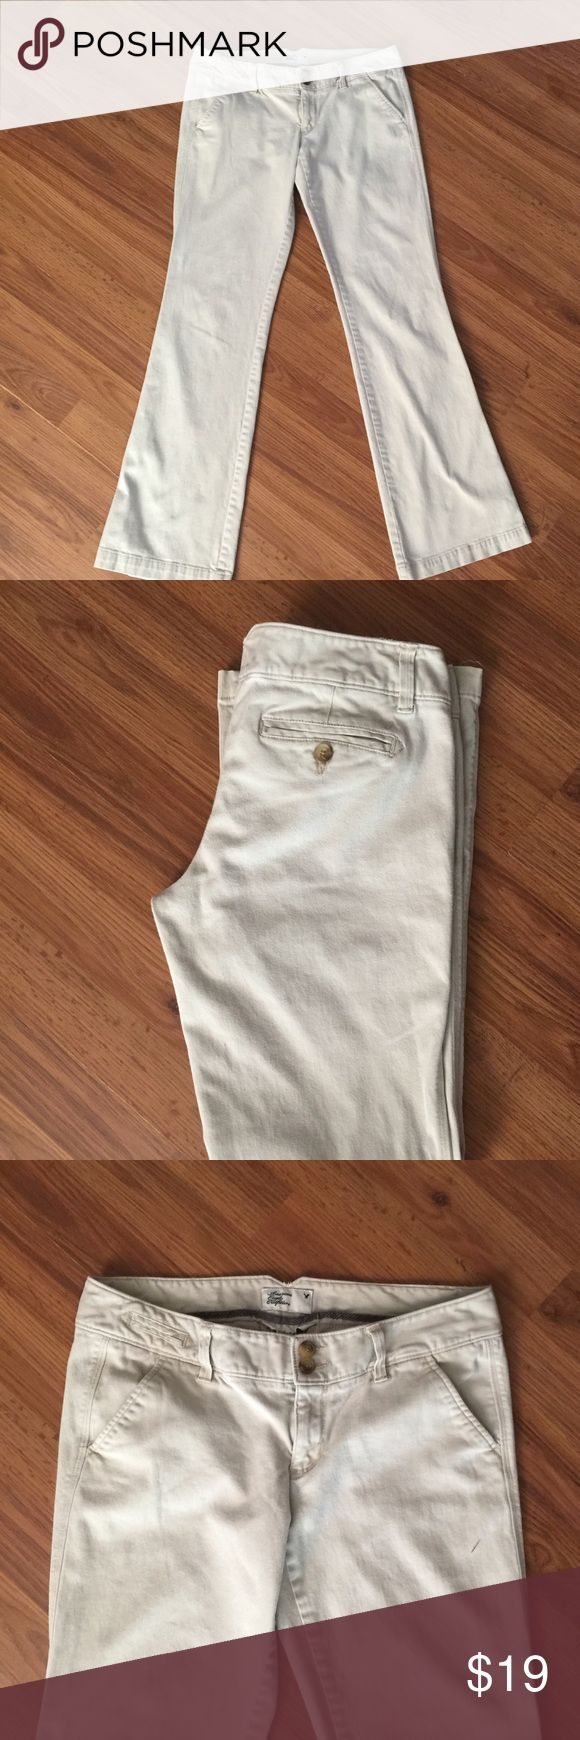 🍩 AEO Khaki Trouser Flare Pants 🍩 Soft American Eagle Trouser Pants with a Flare bottom. No stains, in good condition. Size 6. Bundle from my closet and save!! 💵 American Eagle Outfitters Pants Boot Cut & Flare